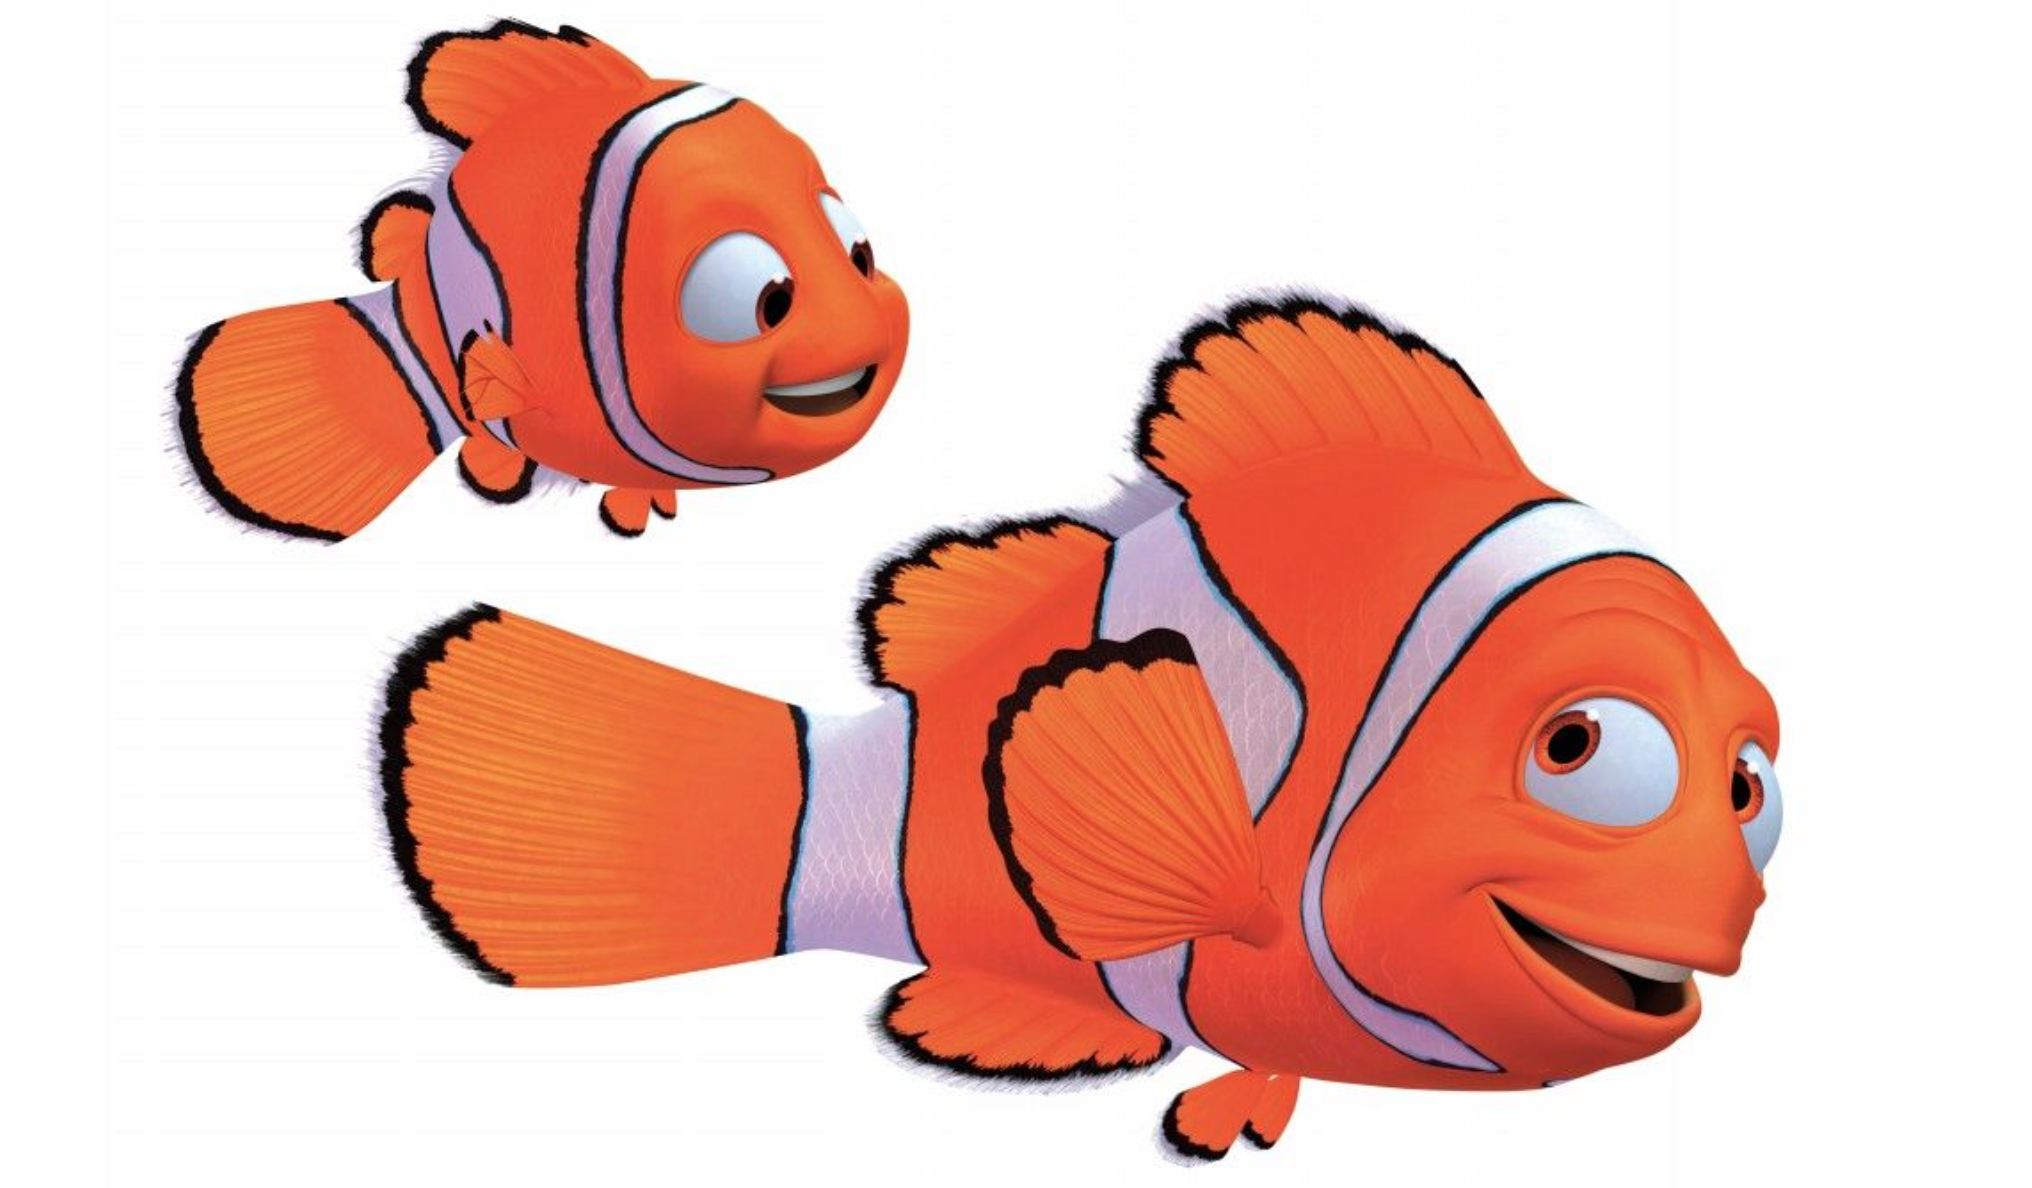 Nemo Fish Clipart at GetDrawings.com | Free for personal use Nemo ...